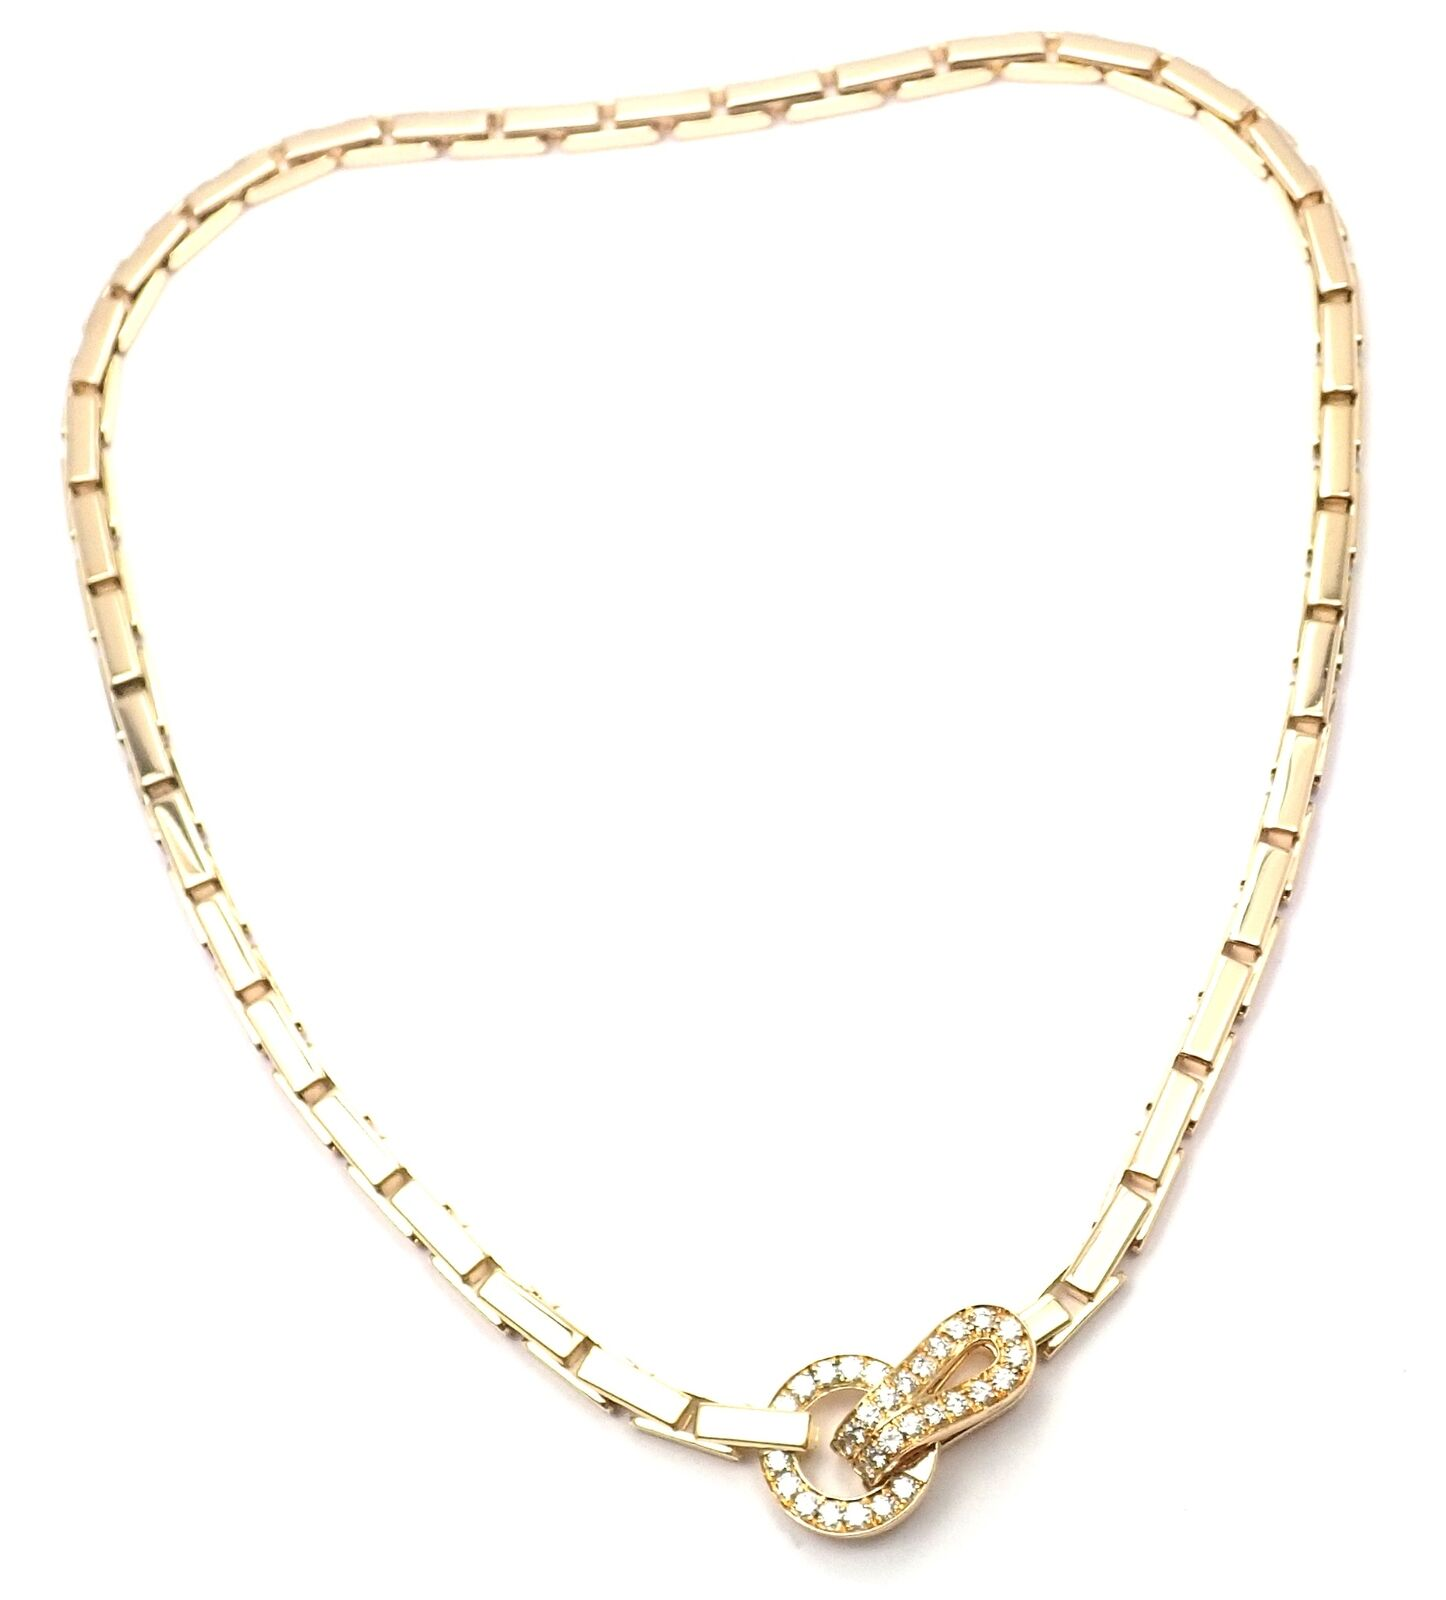 Authentic! Cartier Agrafe Diamond 18k Yellow Gold Link Necklace